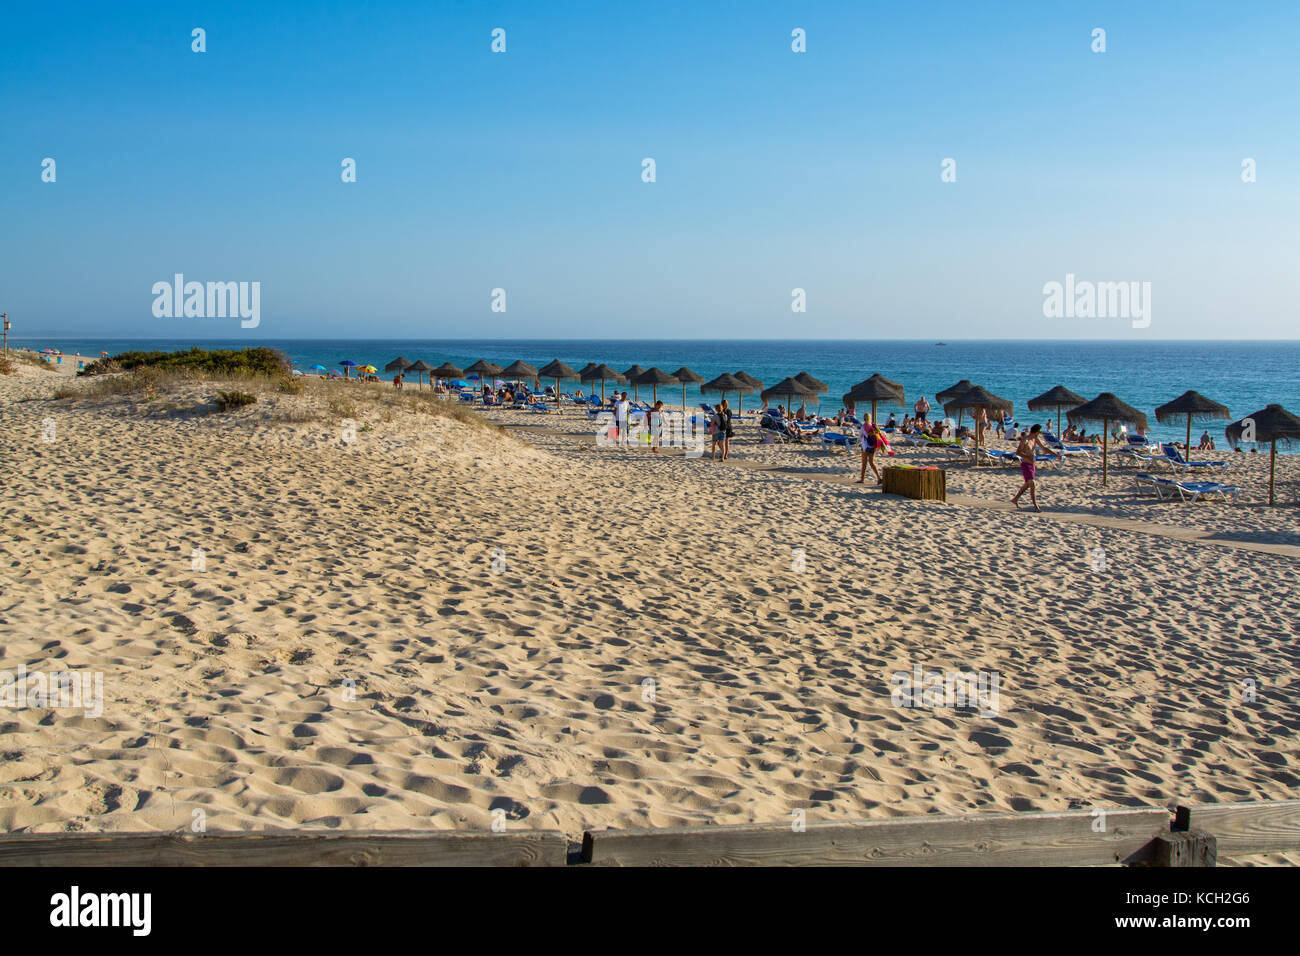 Alentejo Portugal. 06 September 2017.Comporta beach in Alentejo, Portugal. photography by Ricardo Rocha. - Stock Image